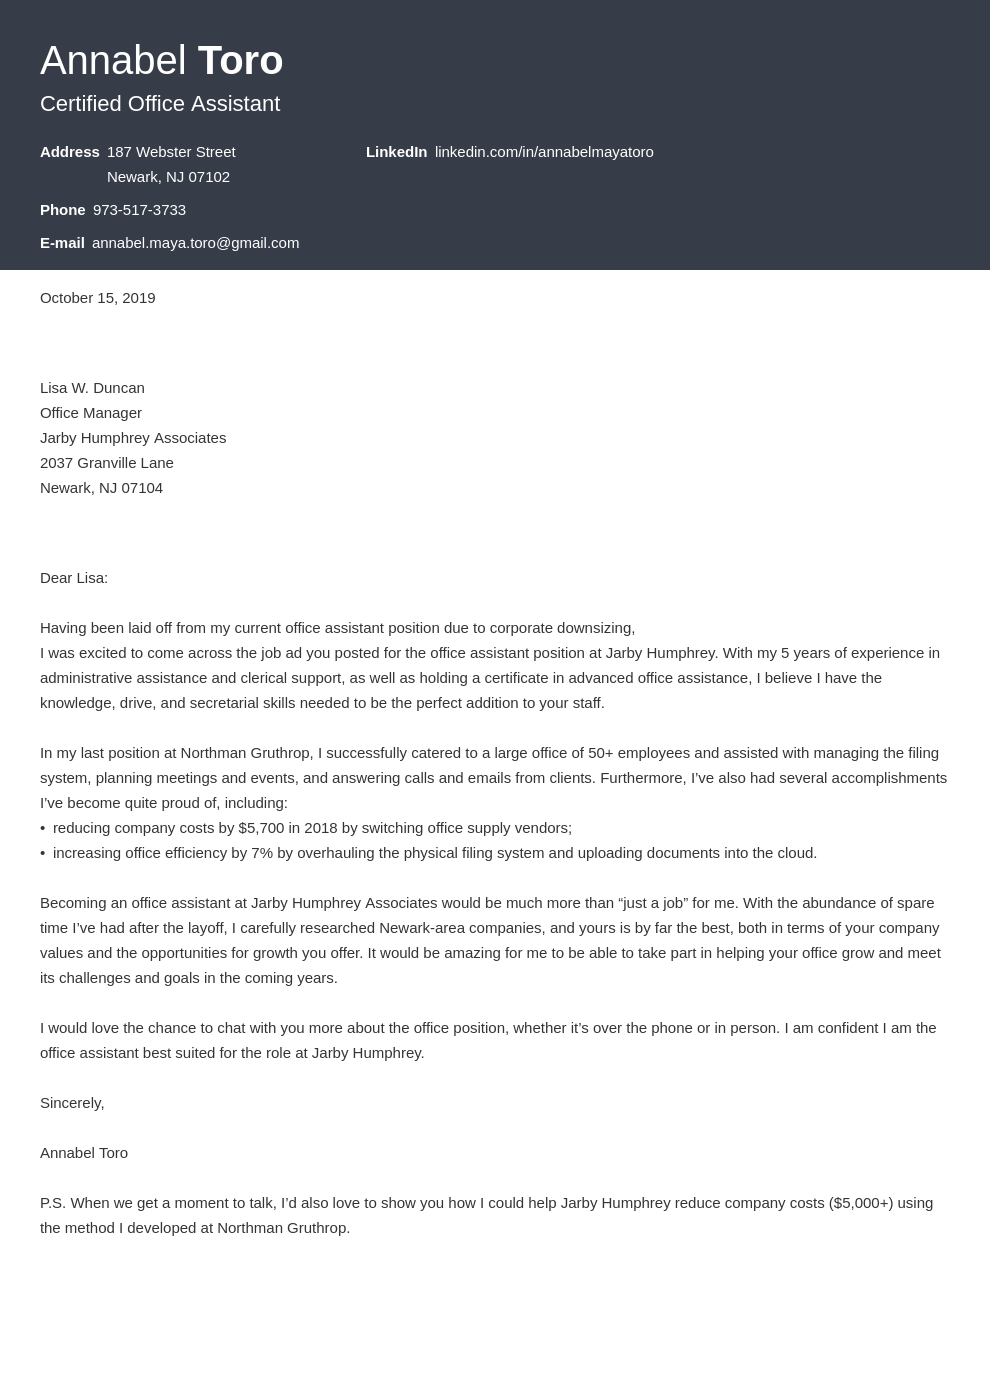 How To Write A Cover Letter For A Job In 2021 12 Examples